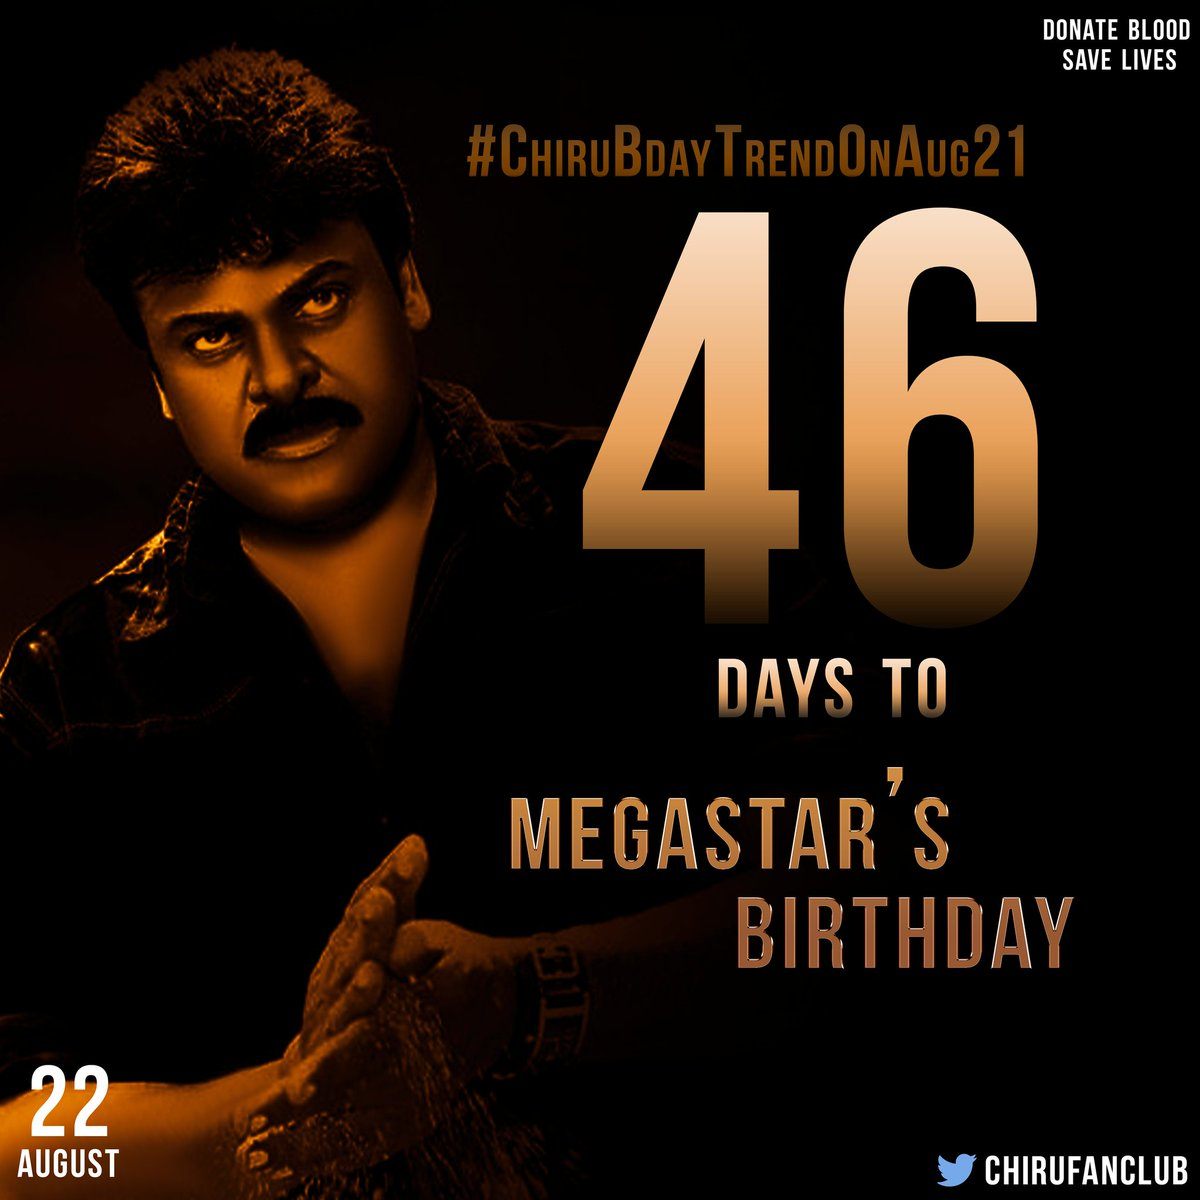 More 46 Day's to go for our Boss @KChiruTweets Birthday #MegastarChiranjeevi  #ChiruBdayTrendOnAug21pic.twitter.com/akTs0z72c1